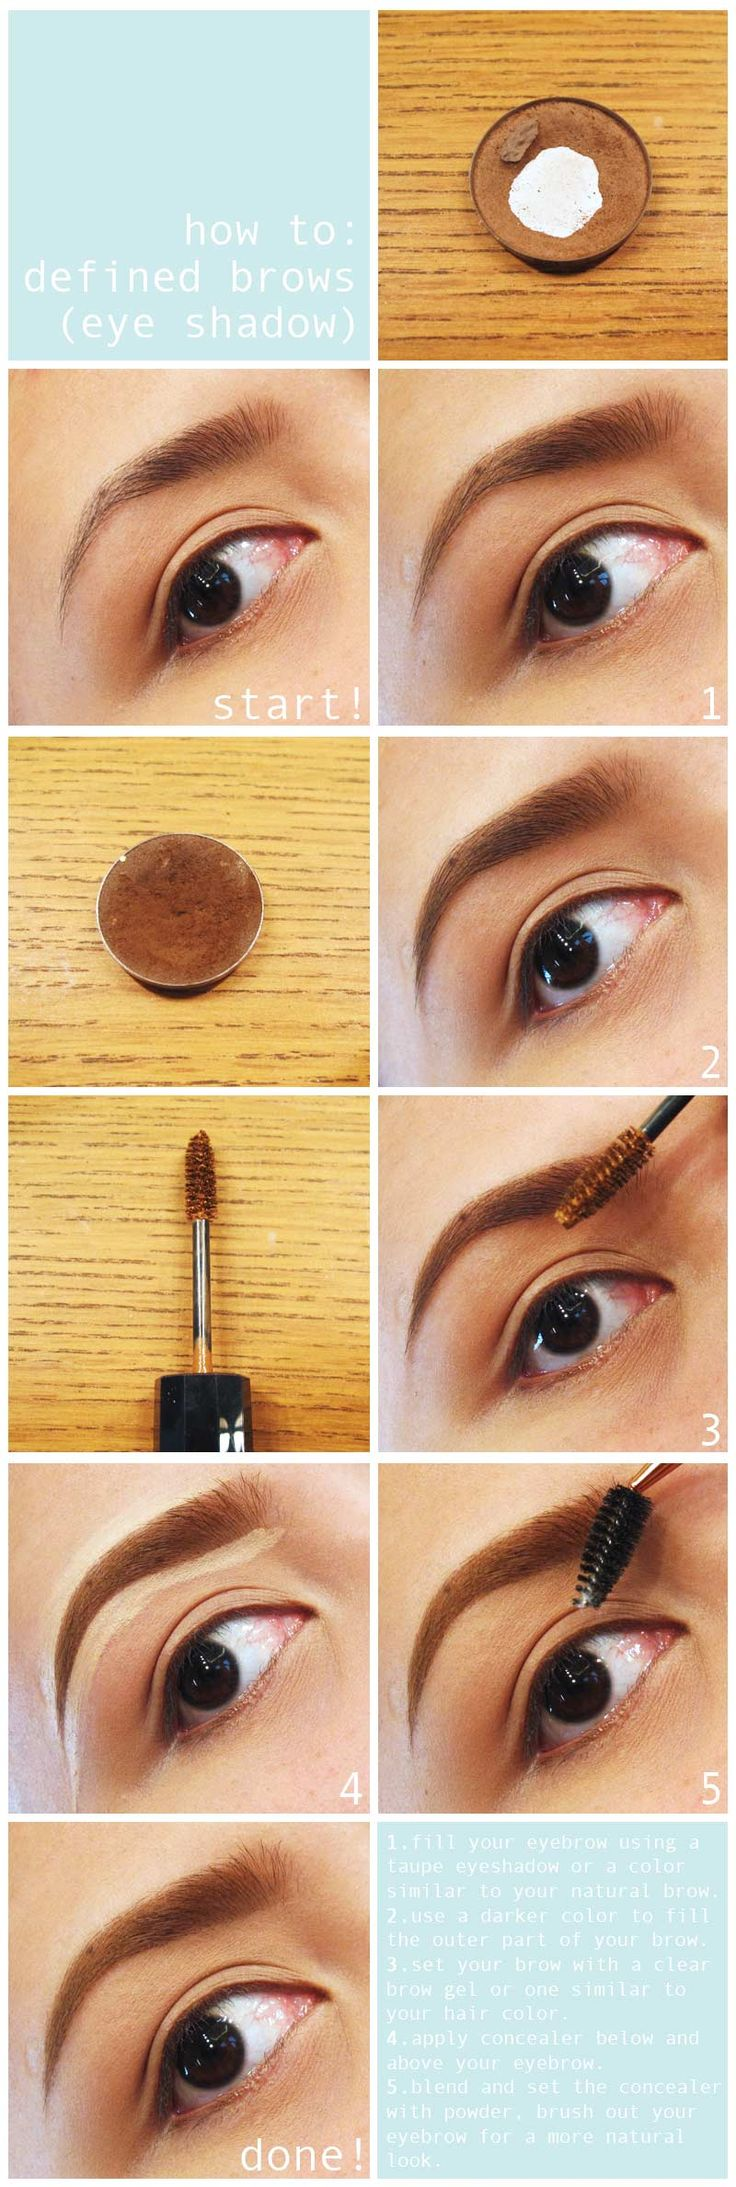 78 Best Images About How To Get Perfect Eyebrows